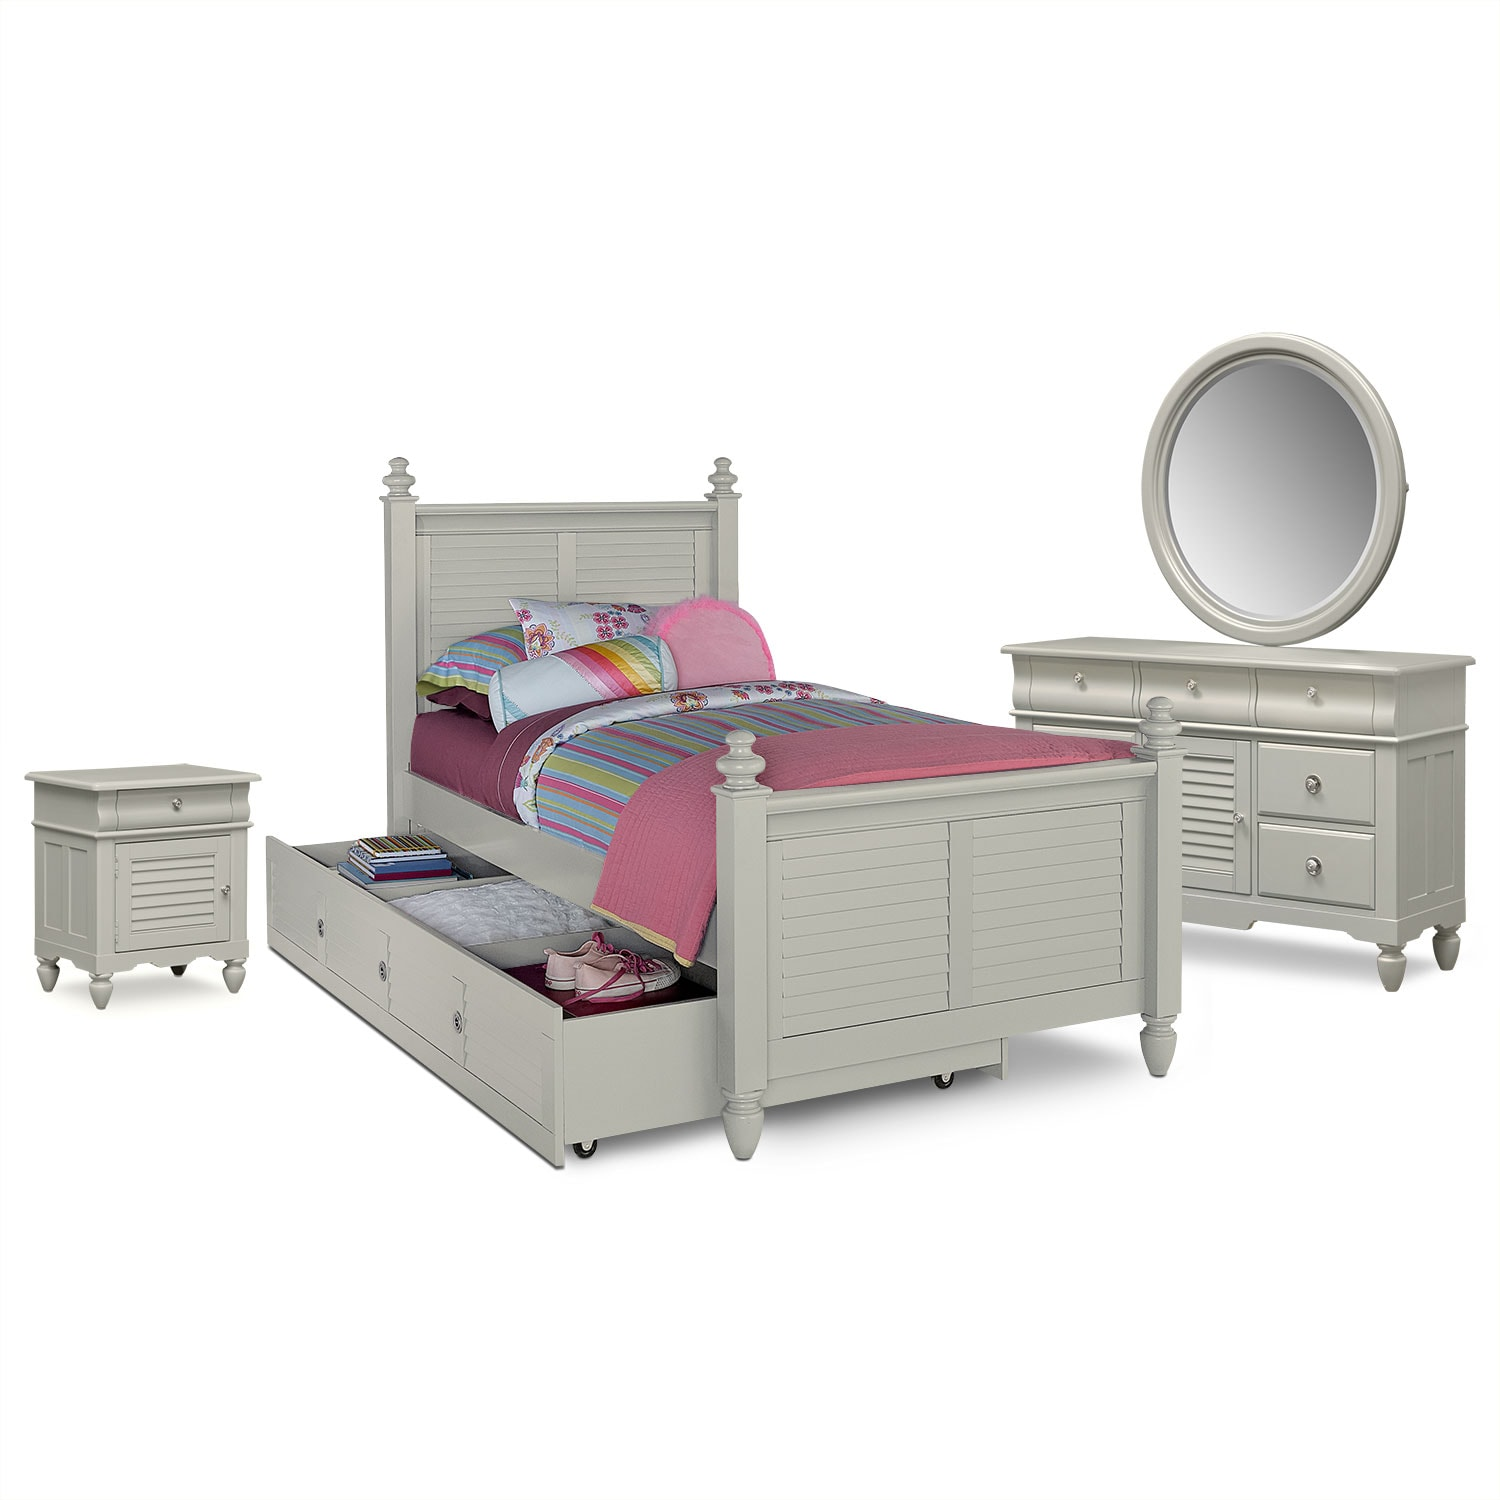 Seaside 6 piece full bedroom set gray value city furniture Seaside collection furniture